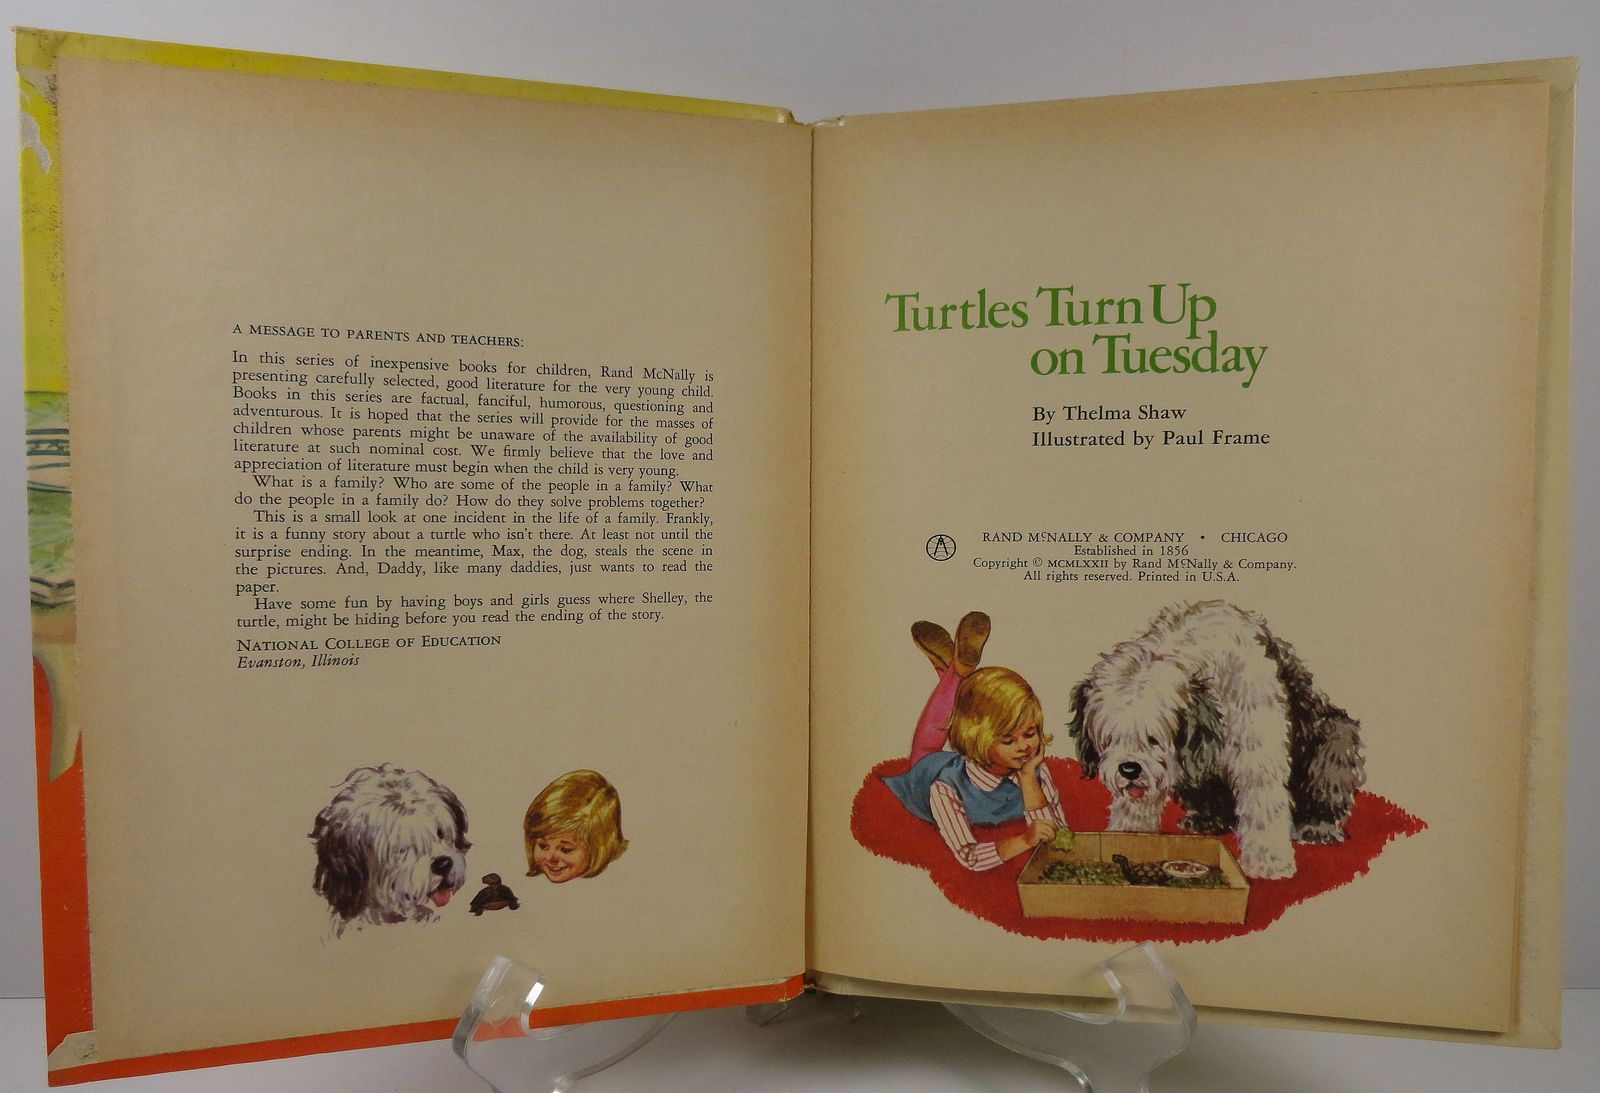 Turtles Turn Up on Tuesday by Thelma Shaw Start Right Elf Book